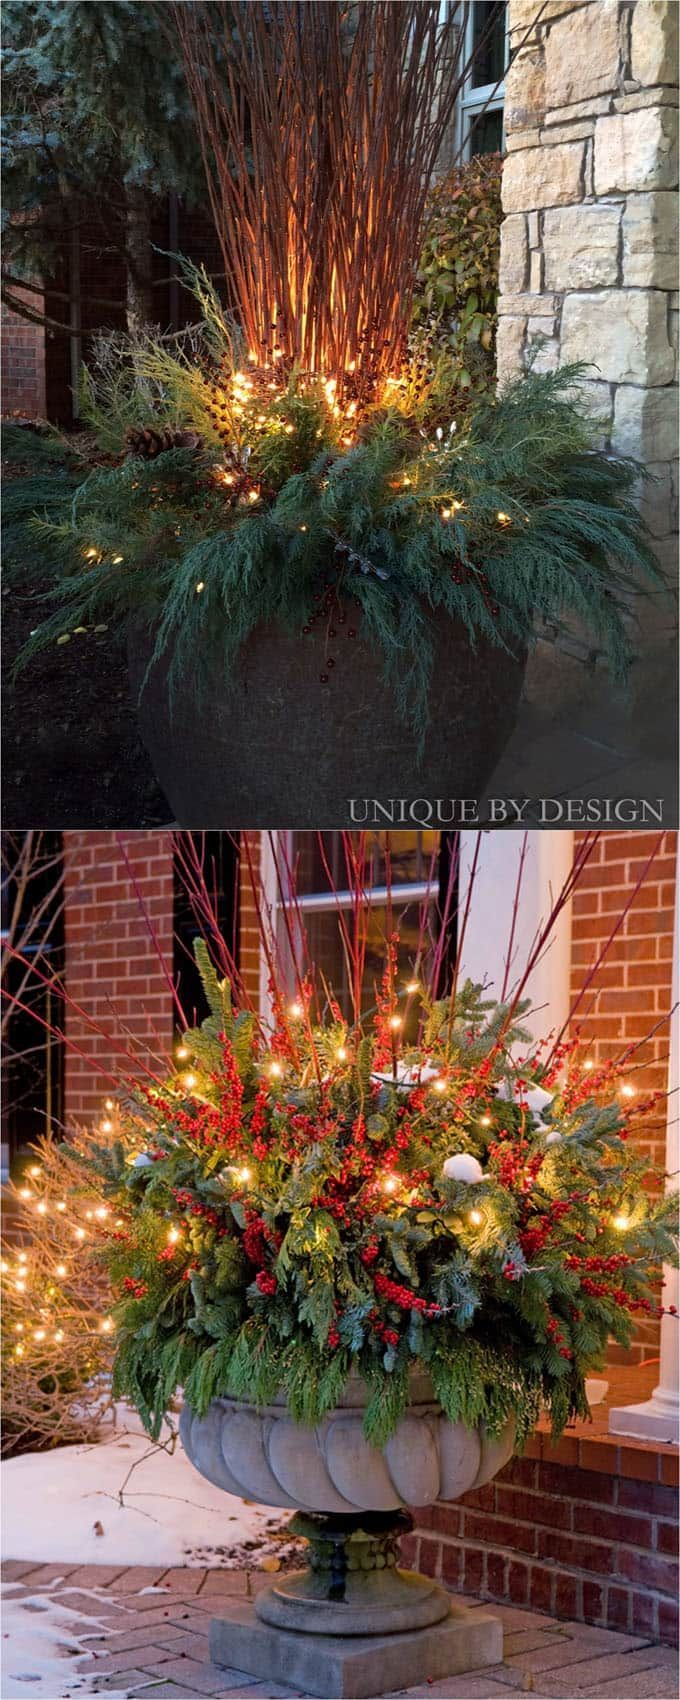 24 Colorful Winter Planters  Christmas Outdoor Decorations 24 Colorful Winter Planters  Christmas Outdoor Decorations